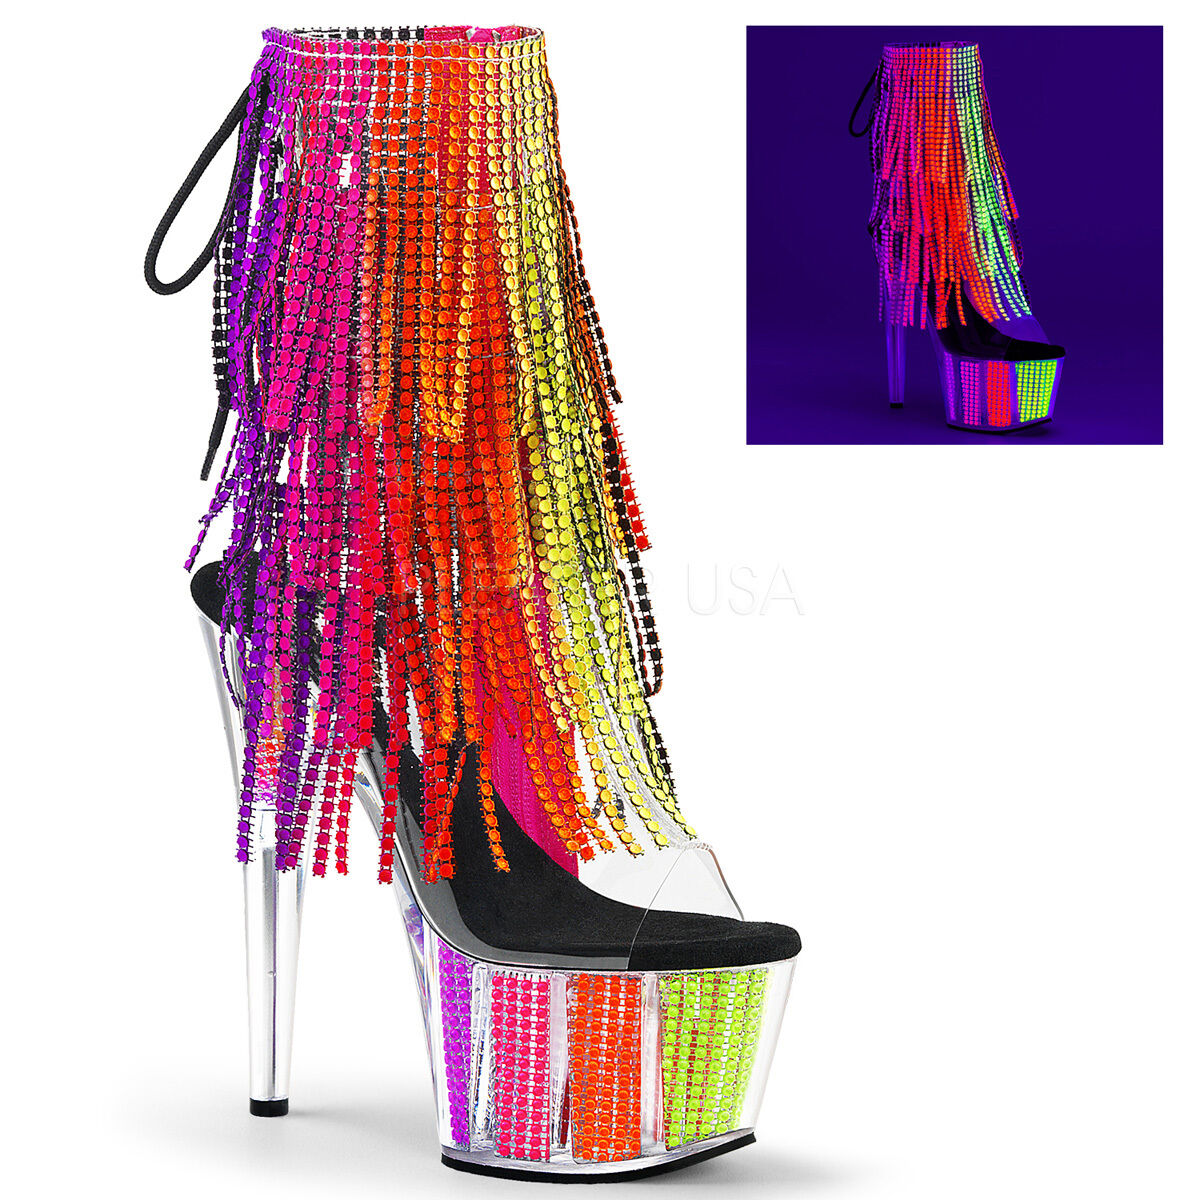 Pleaser ADORE-1017SRS Ankle/Mid-Calf Platform Ankle/Mid-Calf ADORE-1017SRS Stiefel Simulated Rhinestone 454f4d